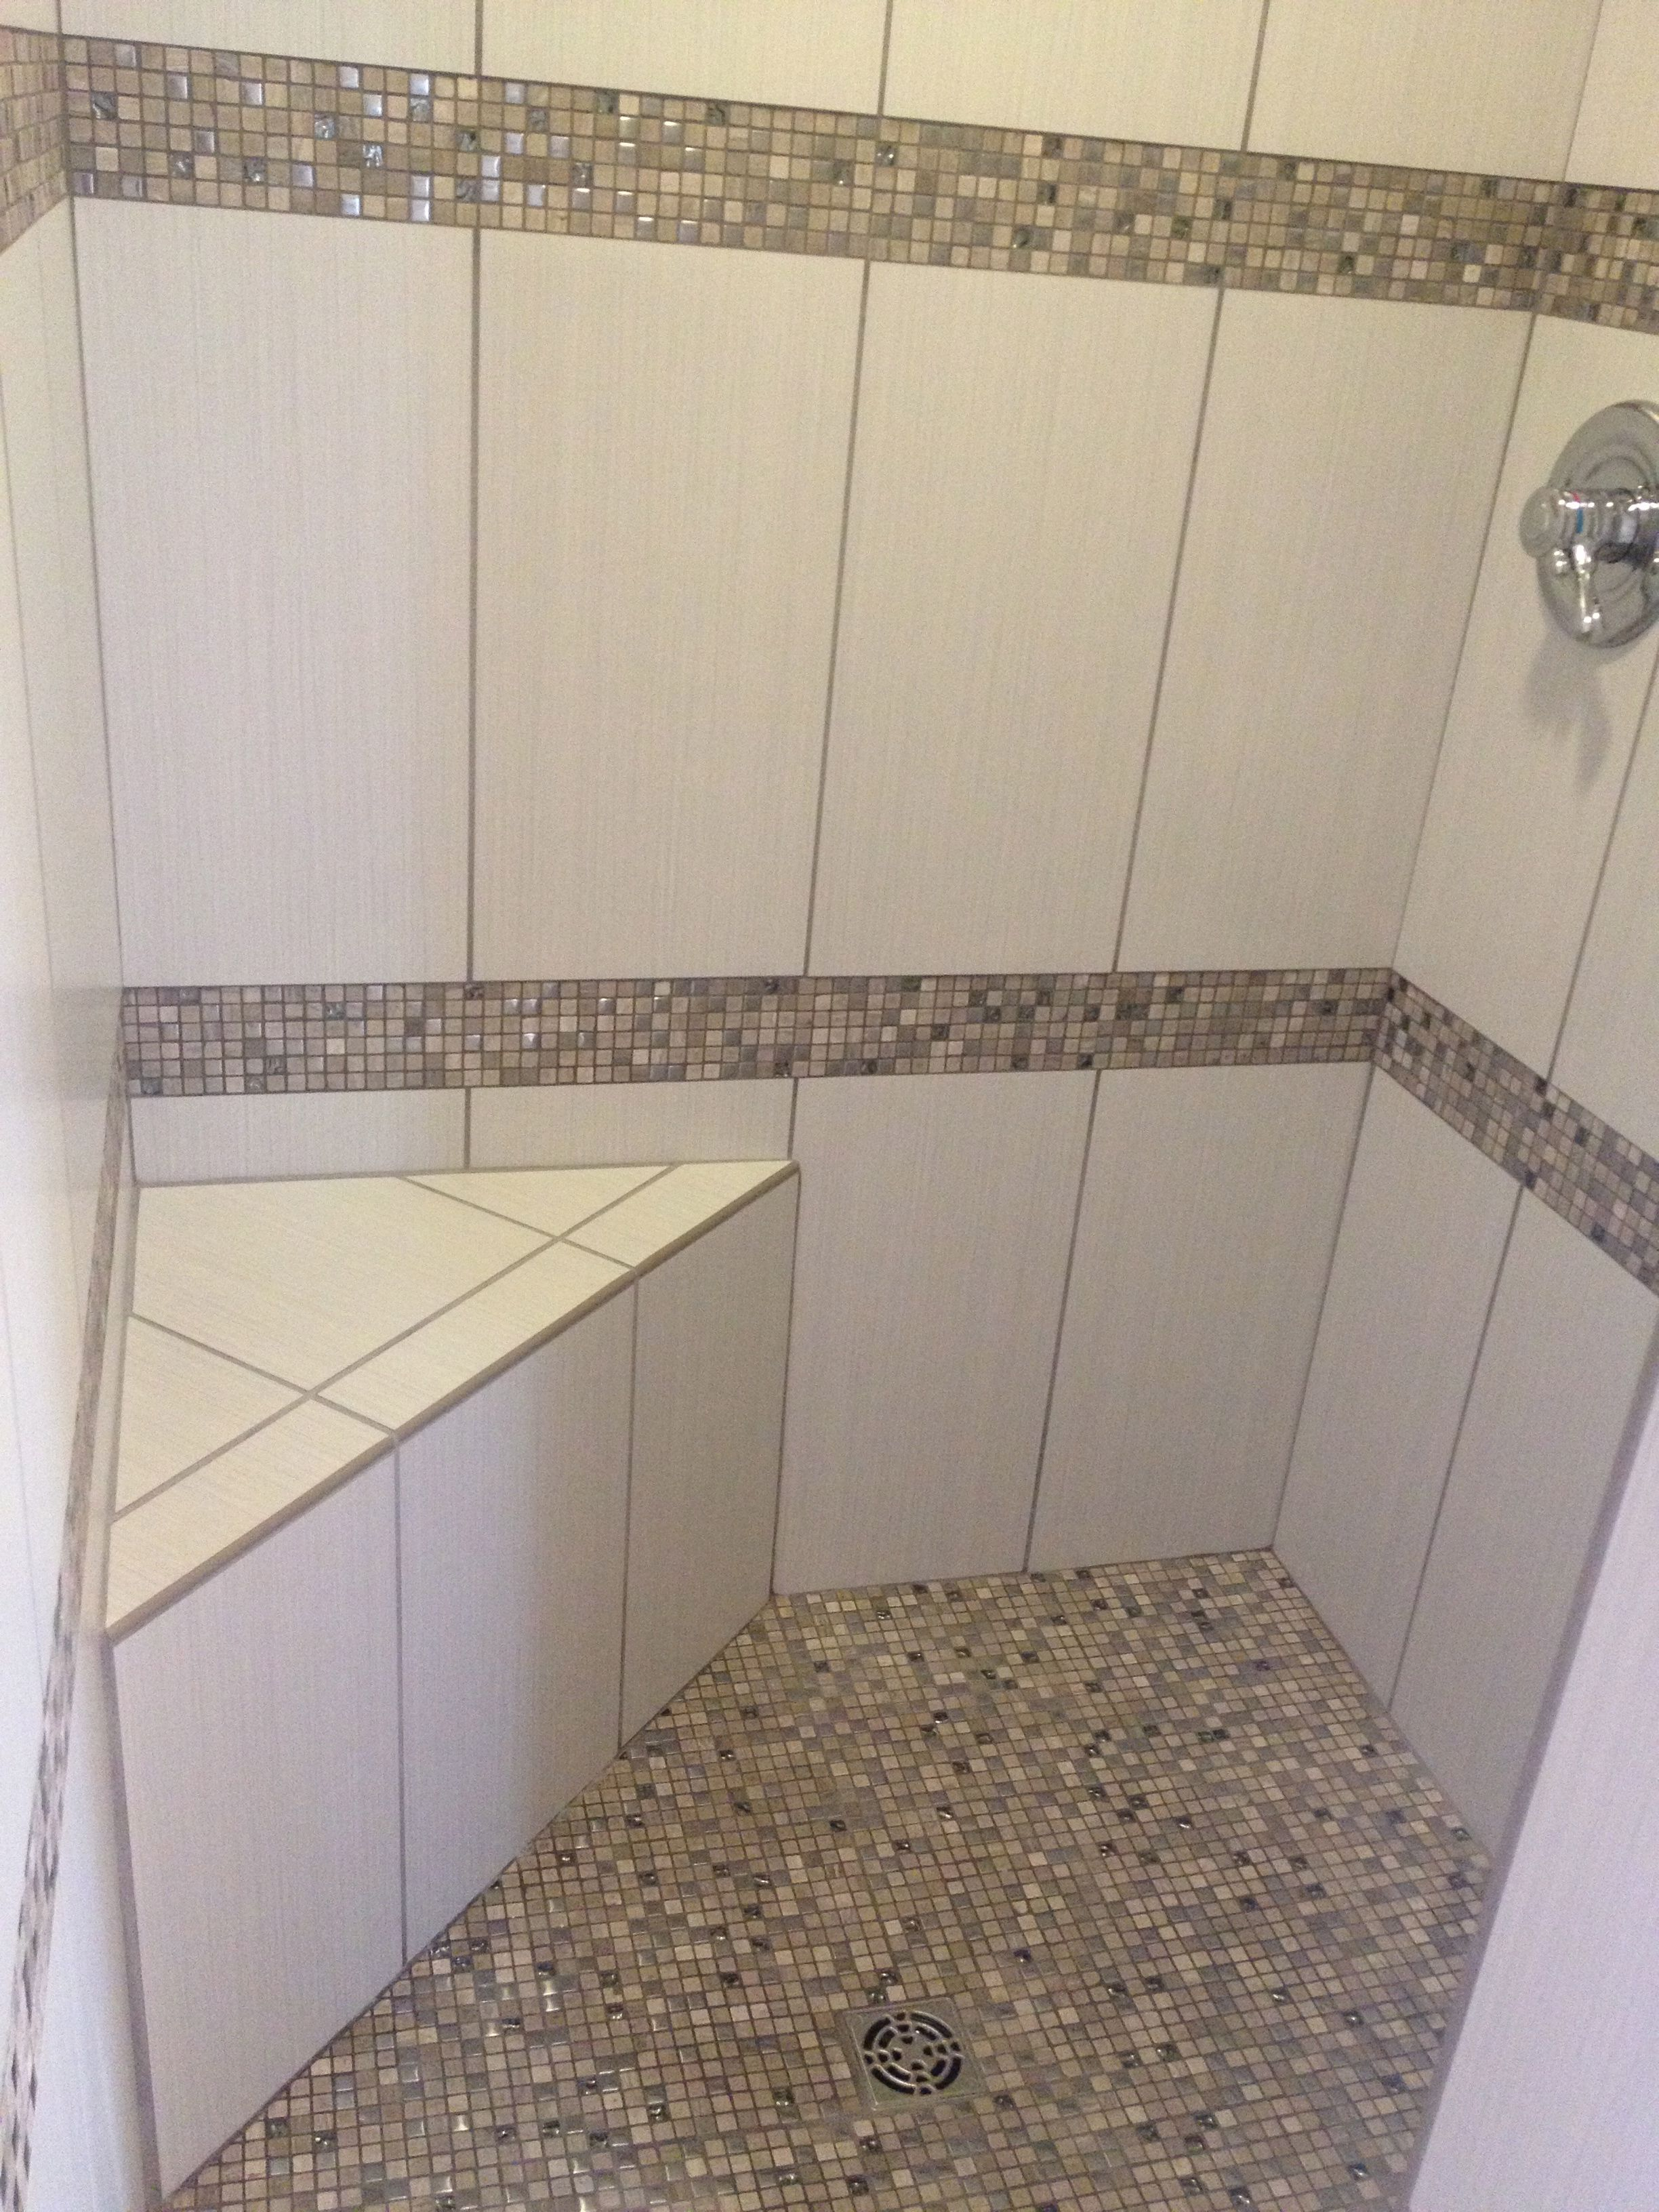 Decorative Shower Tile Decorative Shower Tile  Finishes Floors Walls Ceilings And